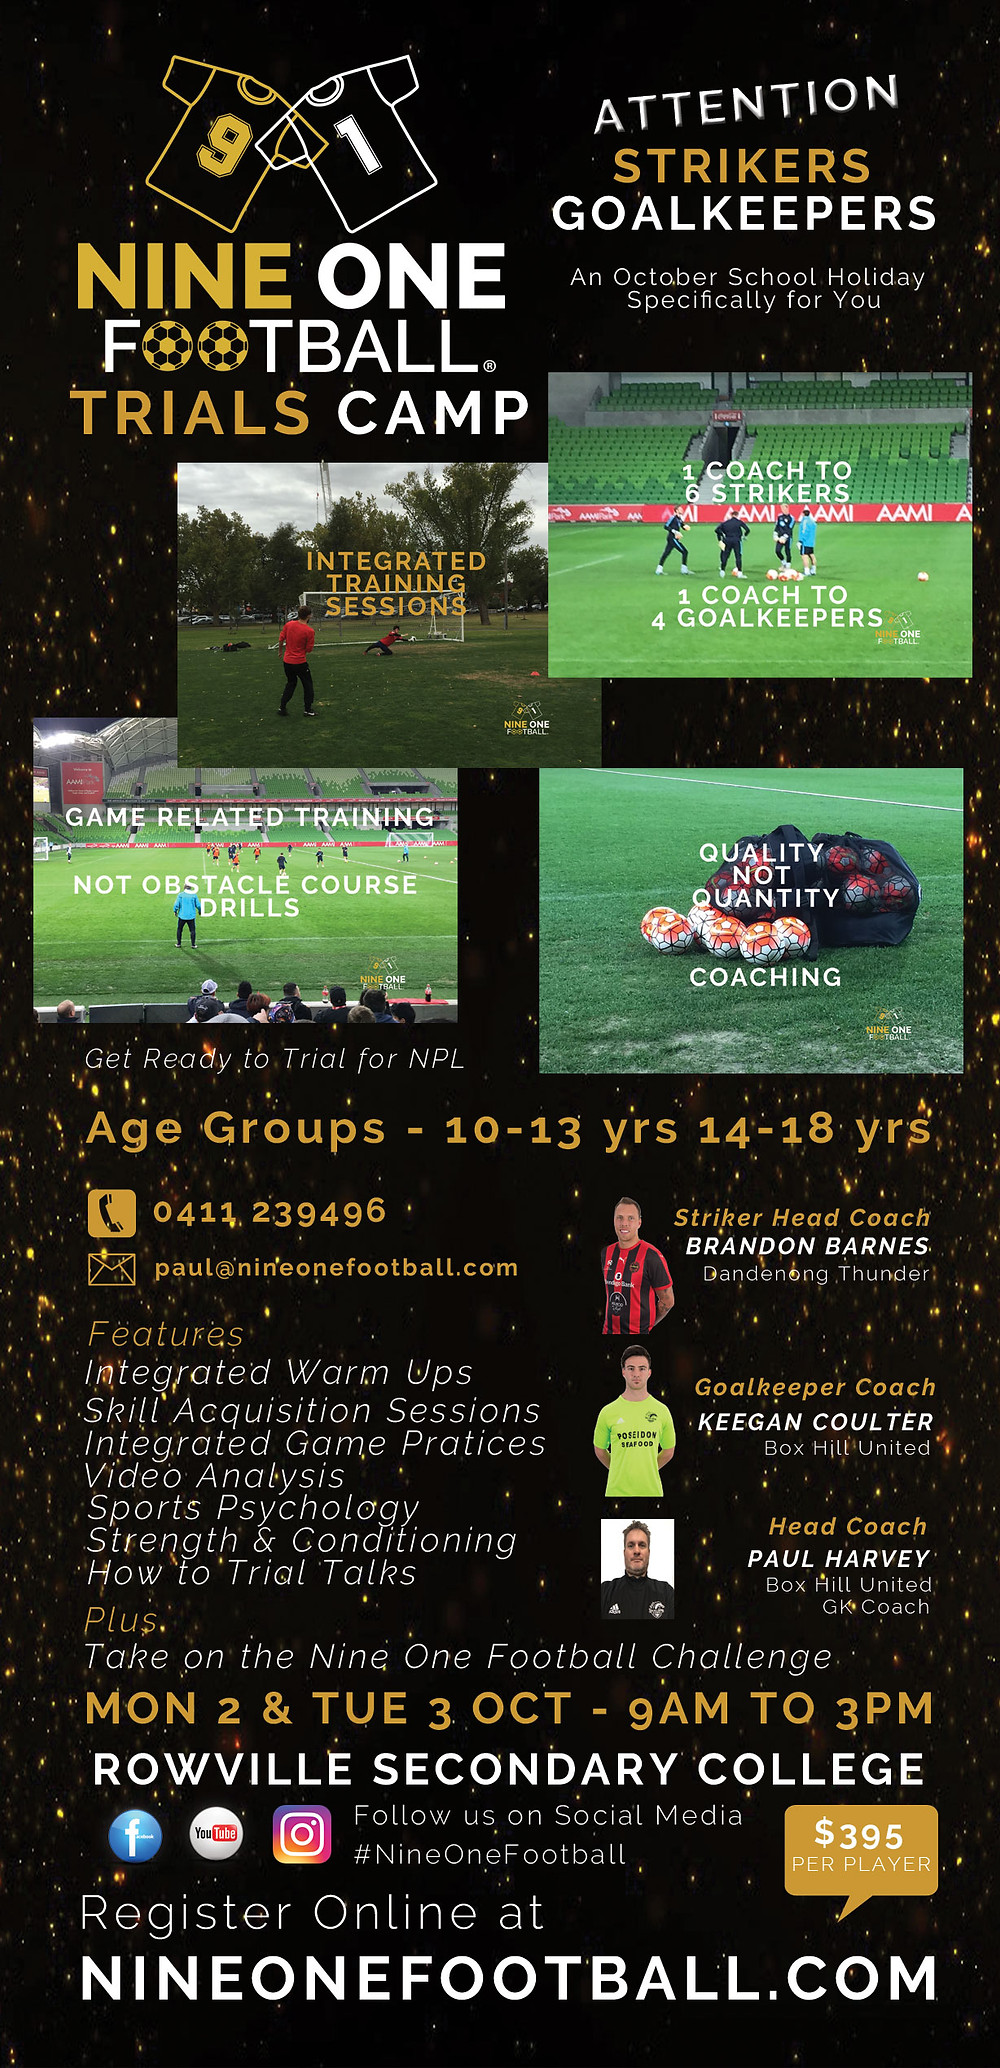 Nine One Football Trials Camp